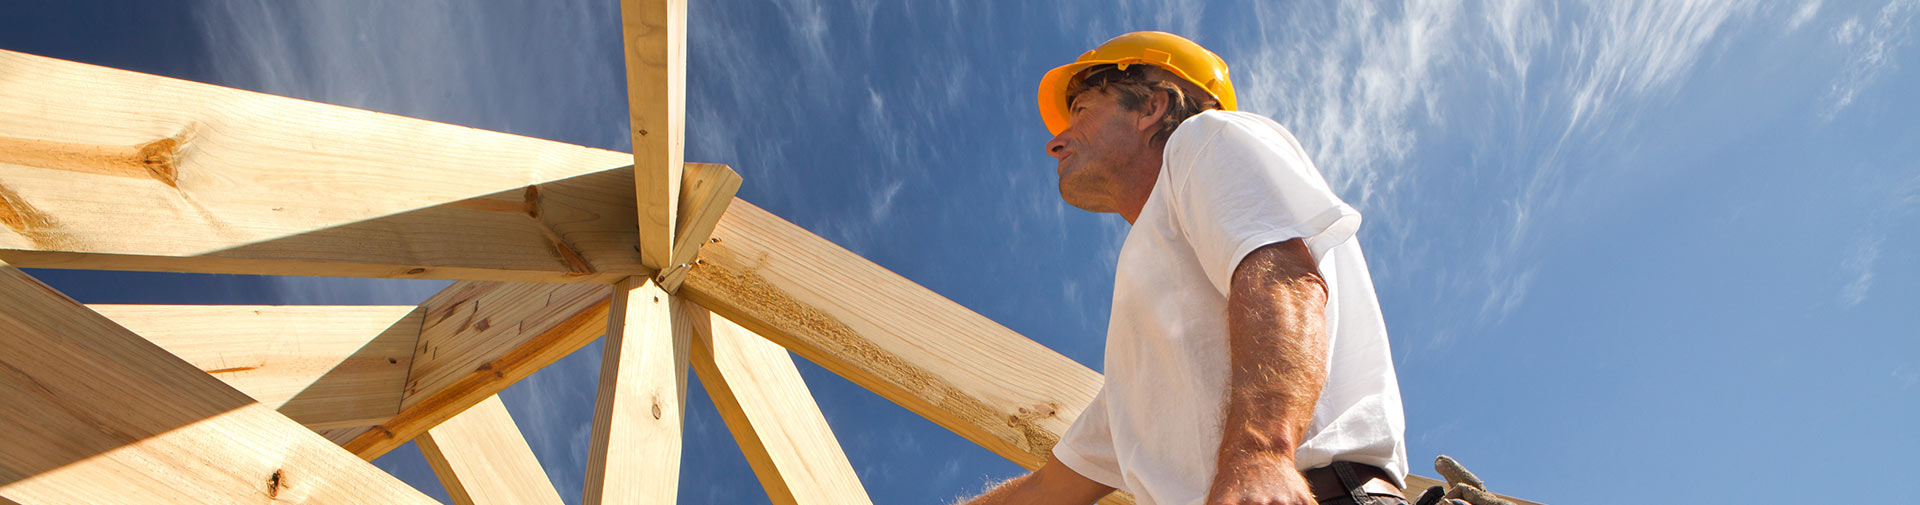 Residential Construction Safety Consultants